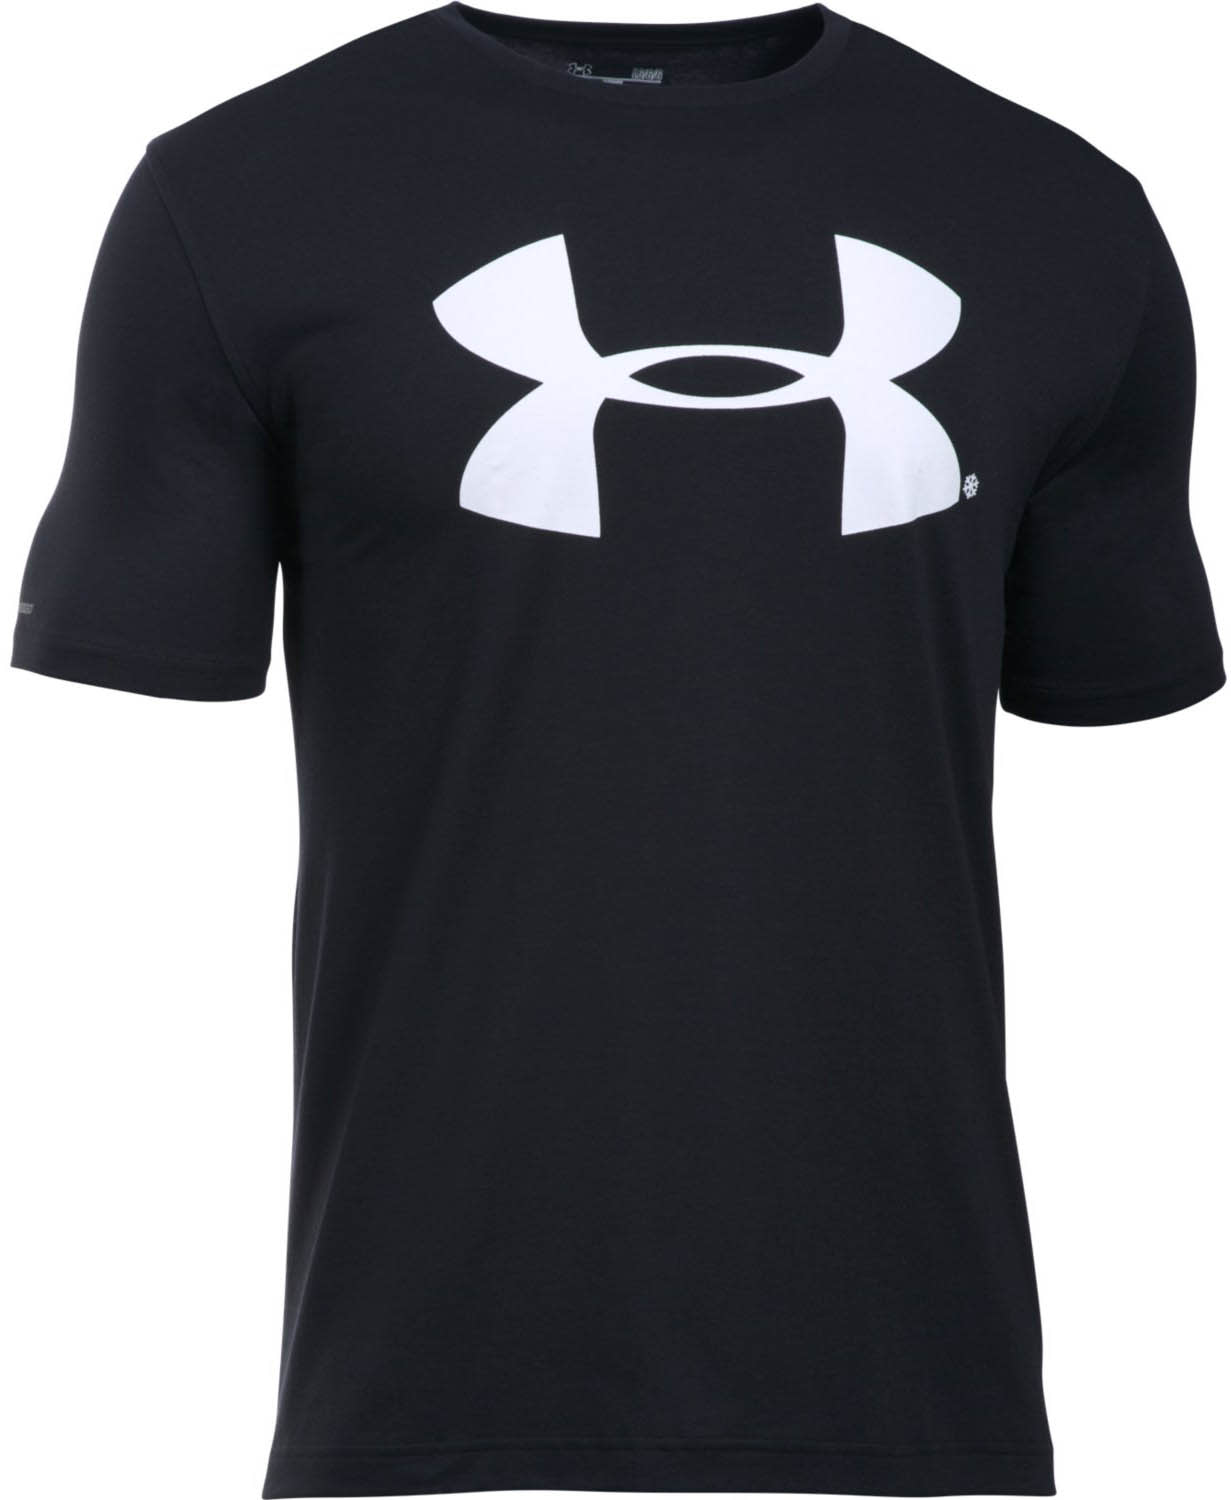 Under Armour Freshies T-Shirt ua3fres04bw17zz-under-armour-t-shirts